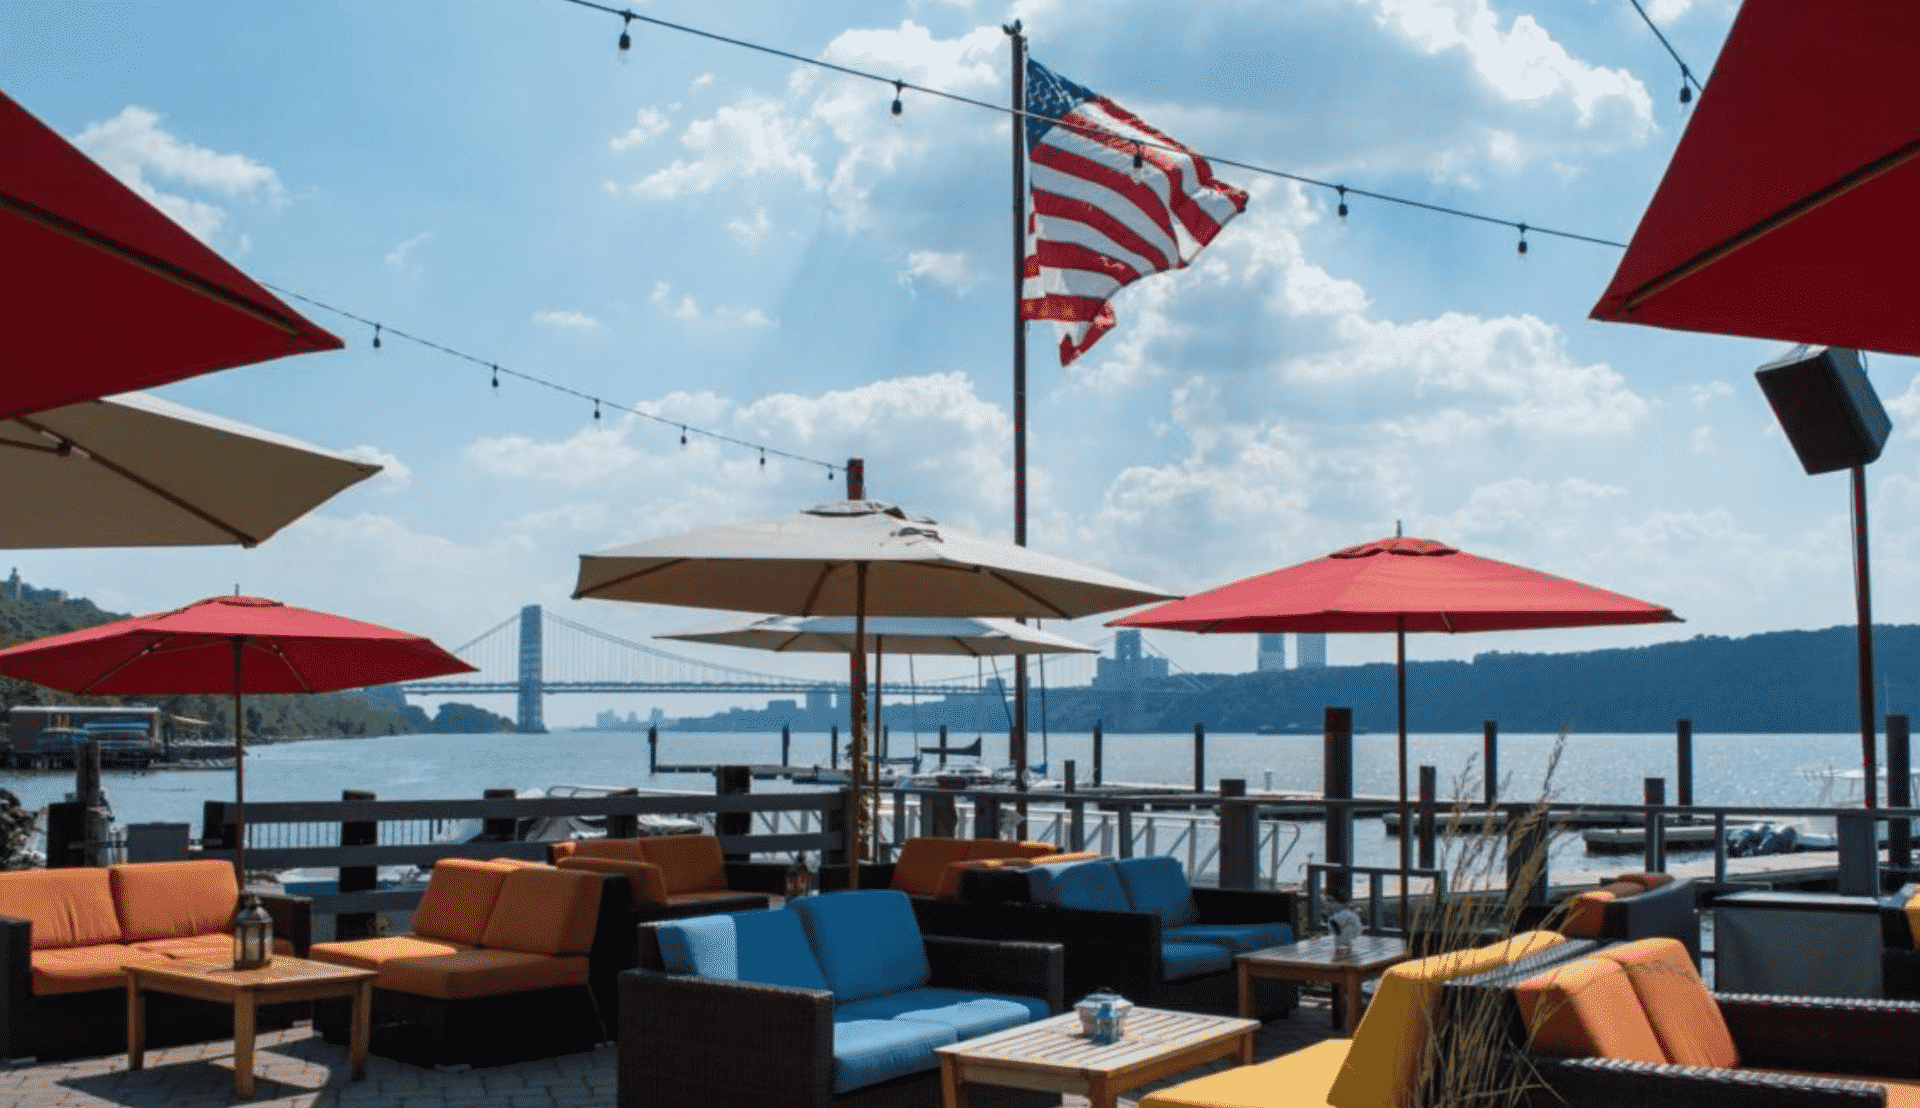 Instagrammable Bar in USA